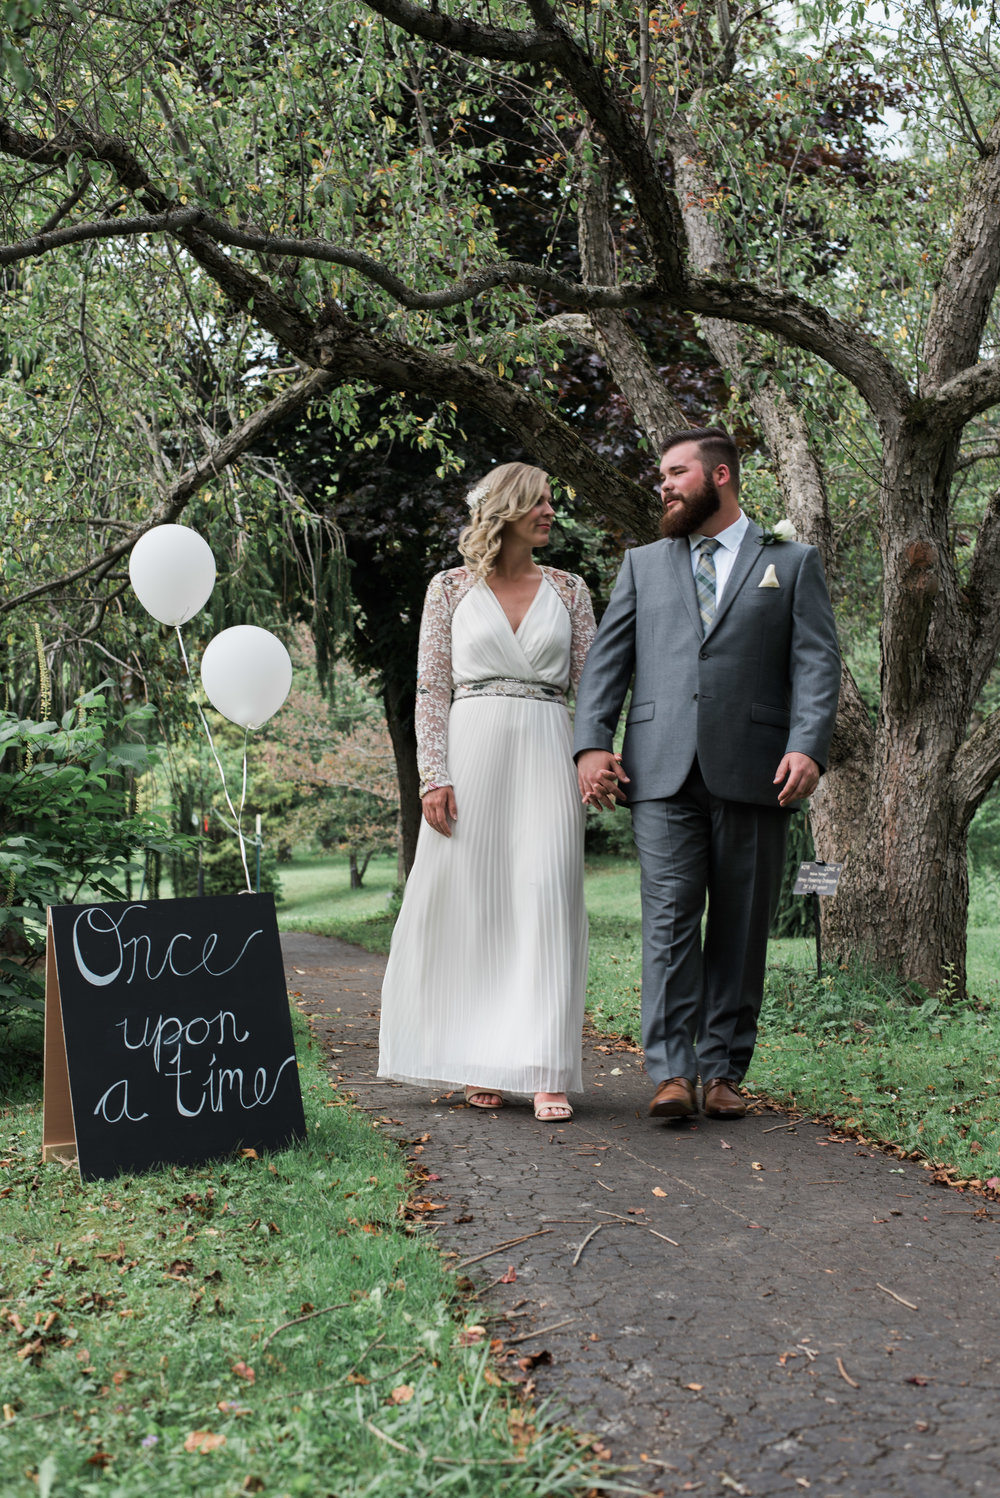 Allison and Matt Wedding Photography in Ellicottville ny by Stefan Ludwig Photography-75.jpg